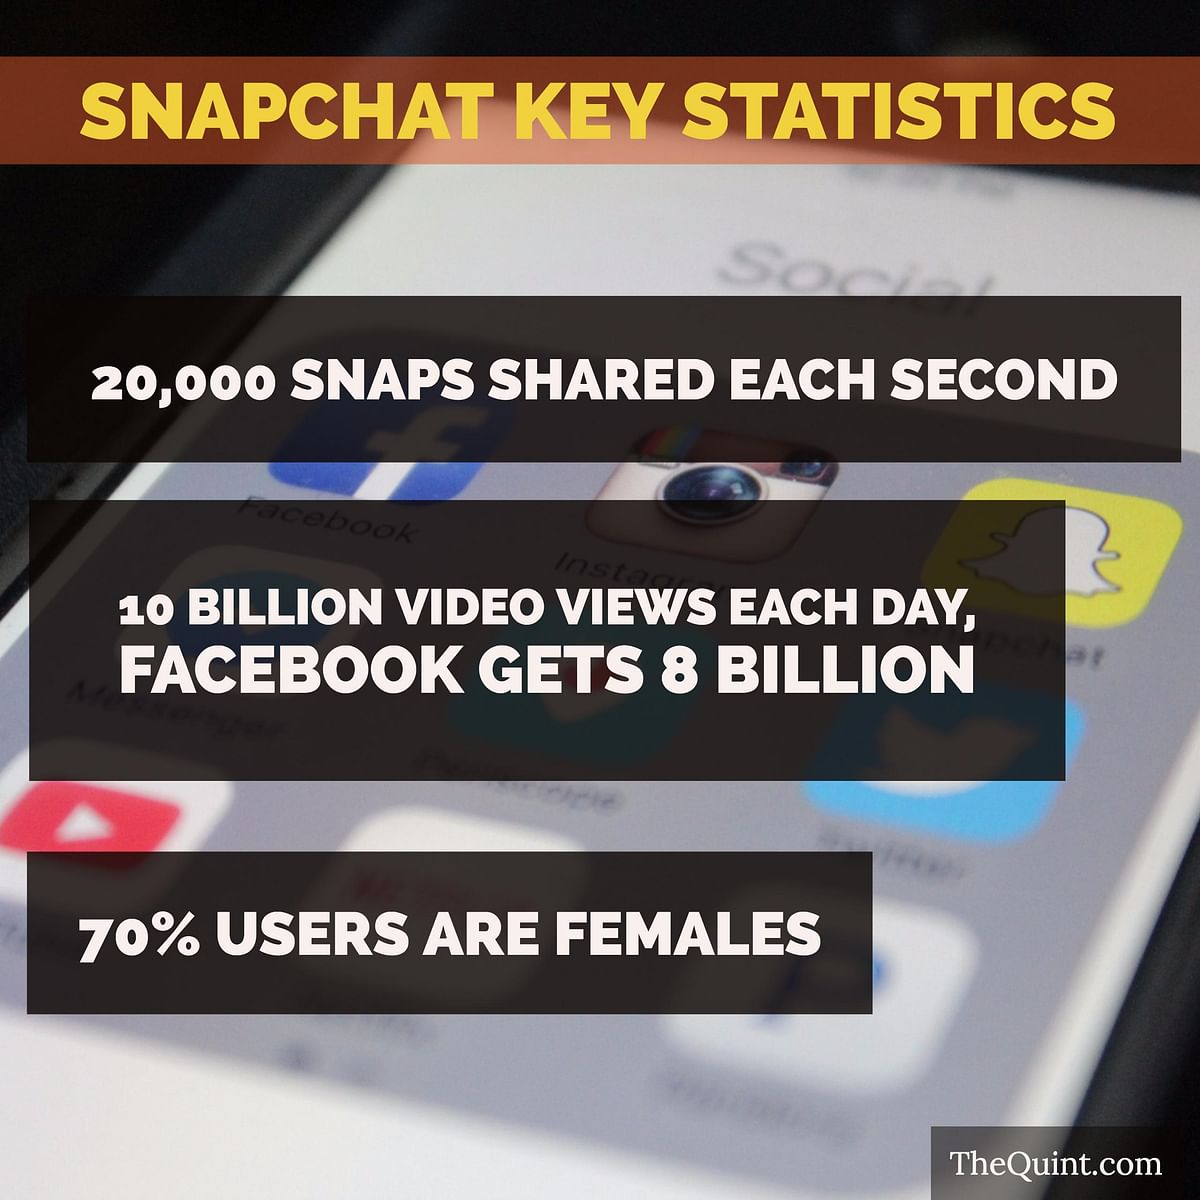 Snapchat is fast becoming the go-to social media app for 18-24 age group globally. (Photo: <b>The Quint</b>)